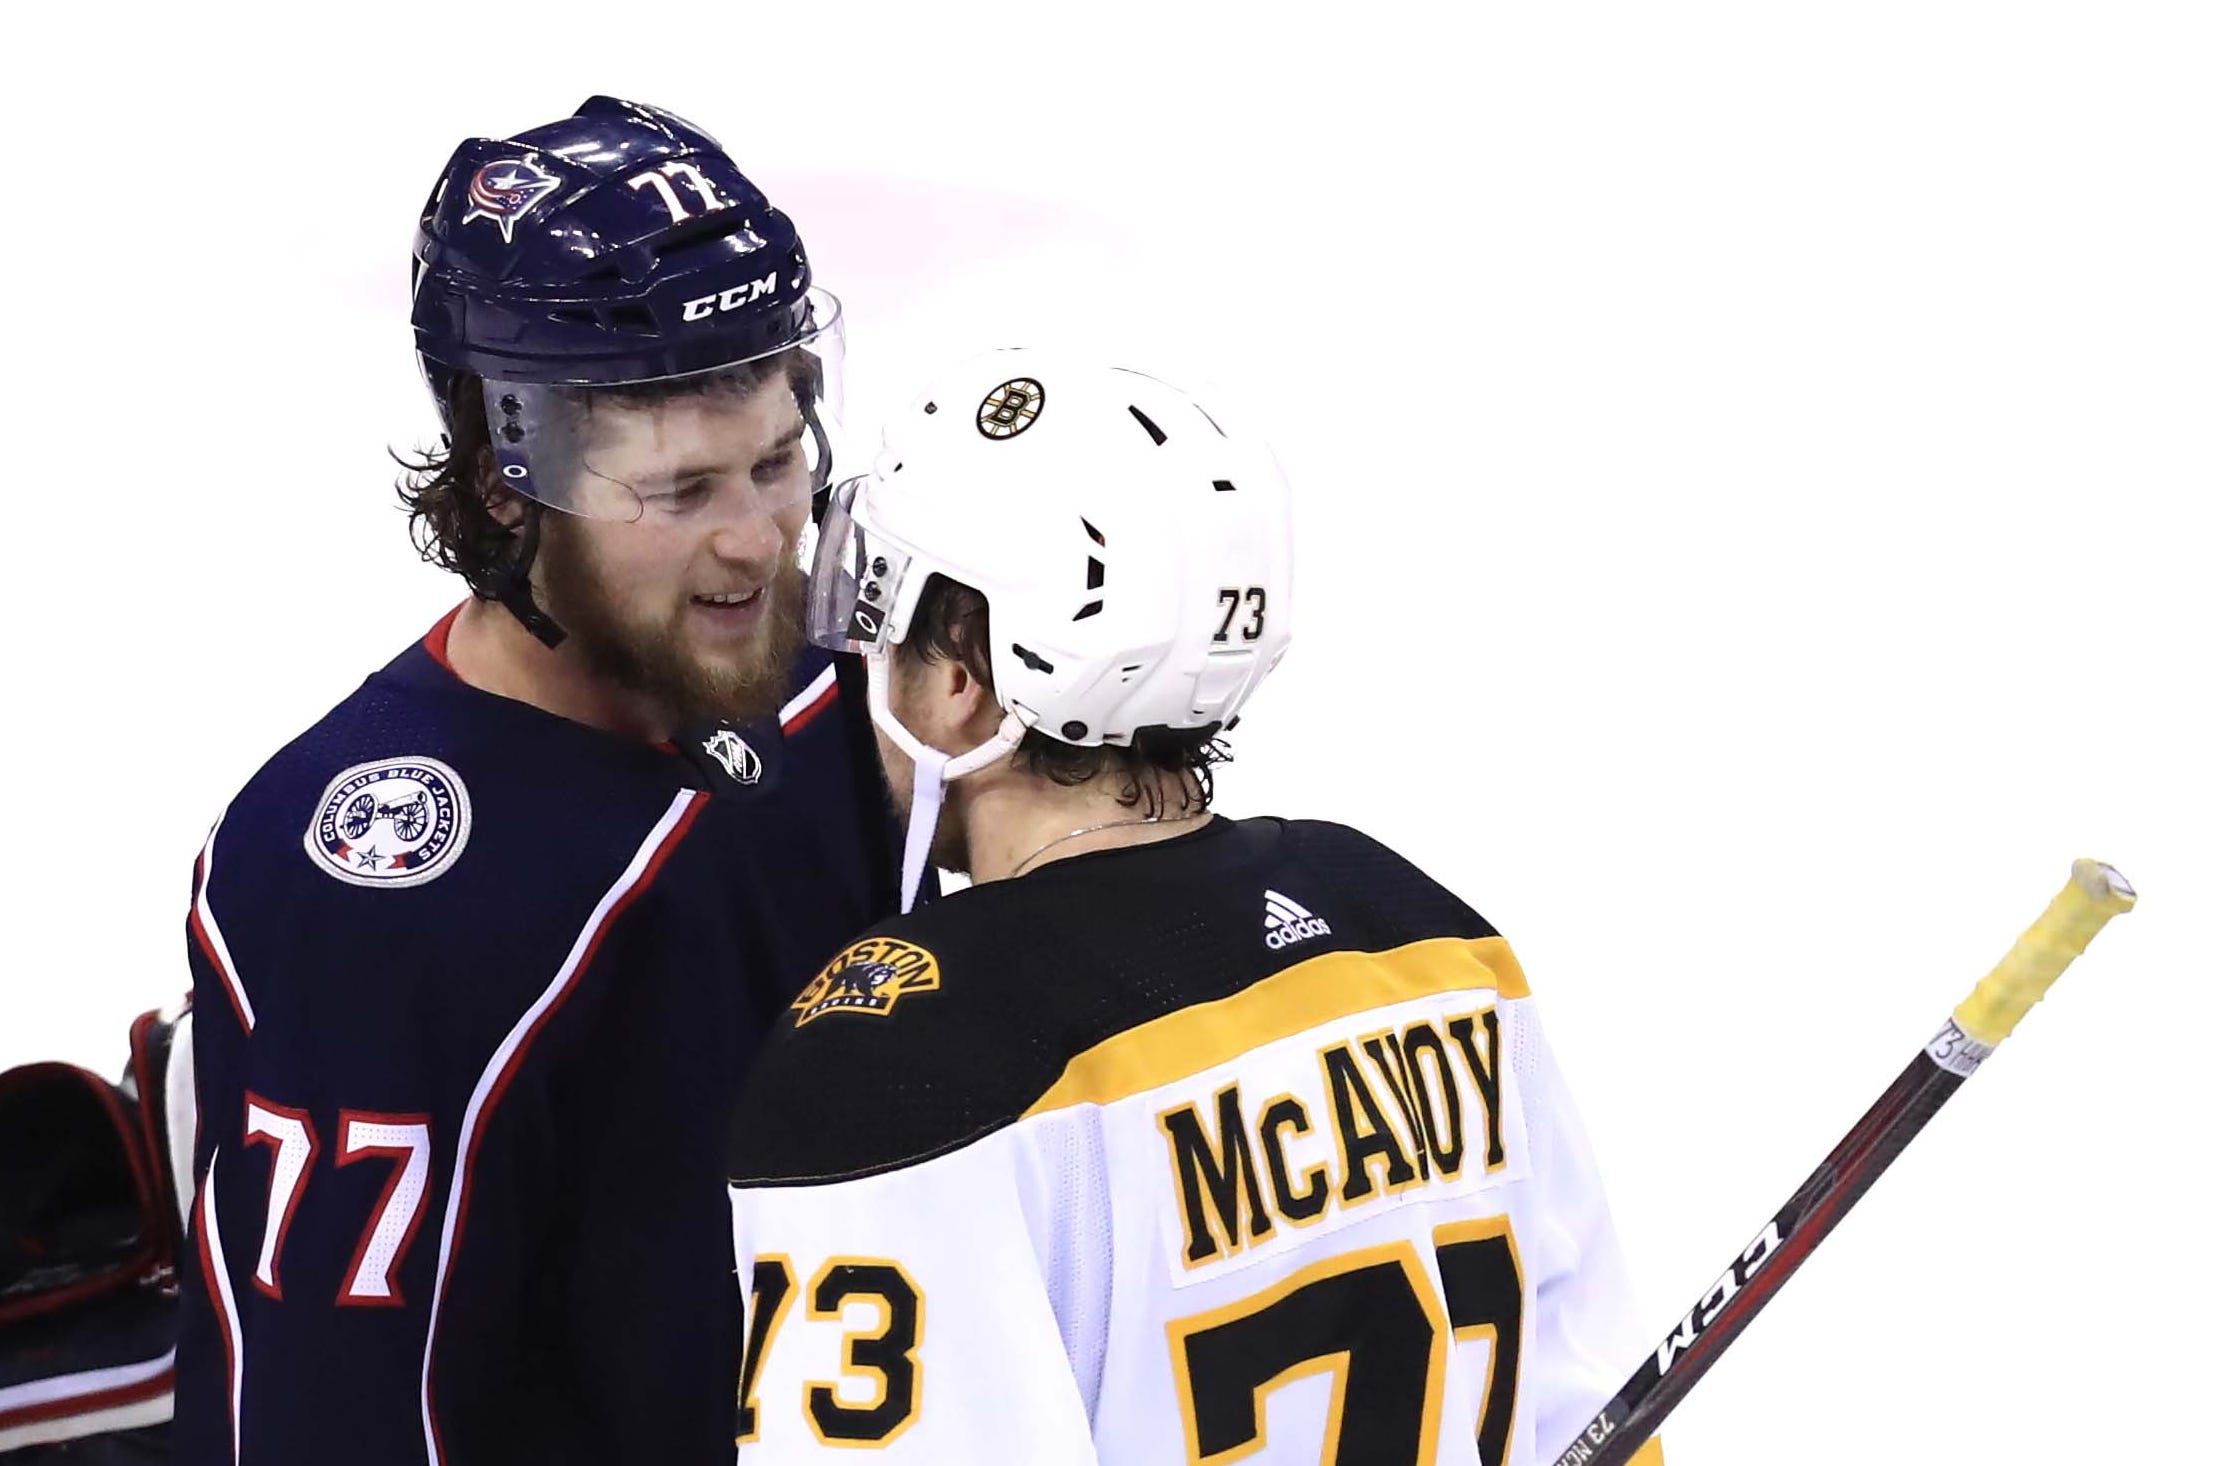 Second round: Blue Jackets right wing Josh Anderson, left, chats with Charlie McAvoy after Game 6. The Bruins defenseman had knocked Anderson temporarily out of the game with a hit to the head.